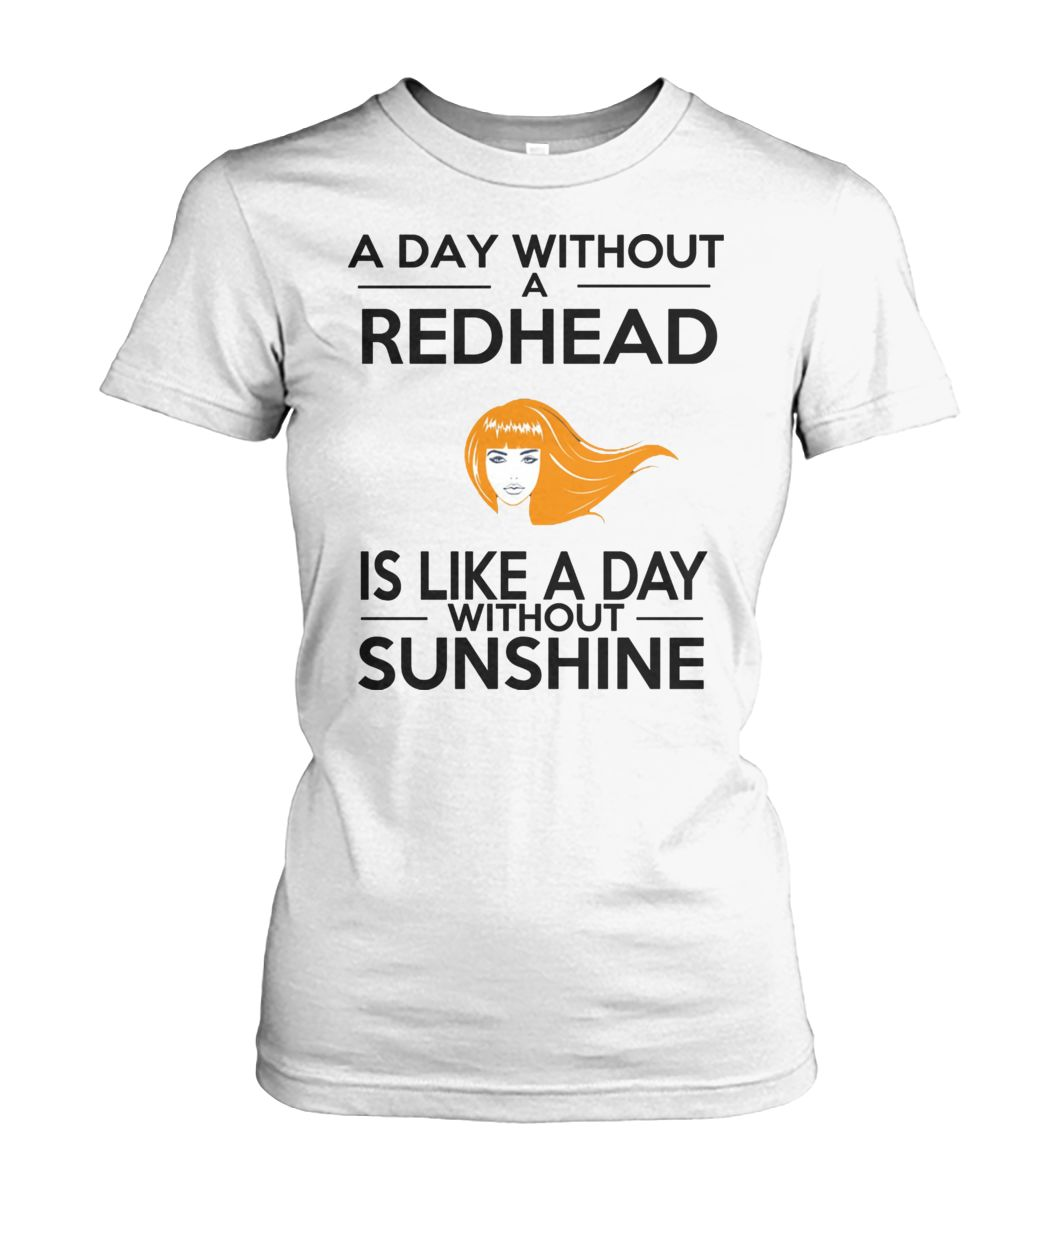 A day without a redhead is like a day without sunshine women's crew tee